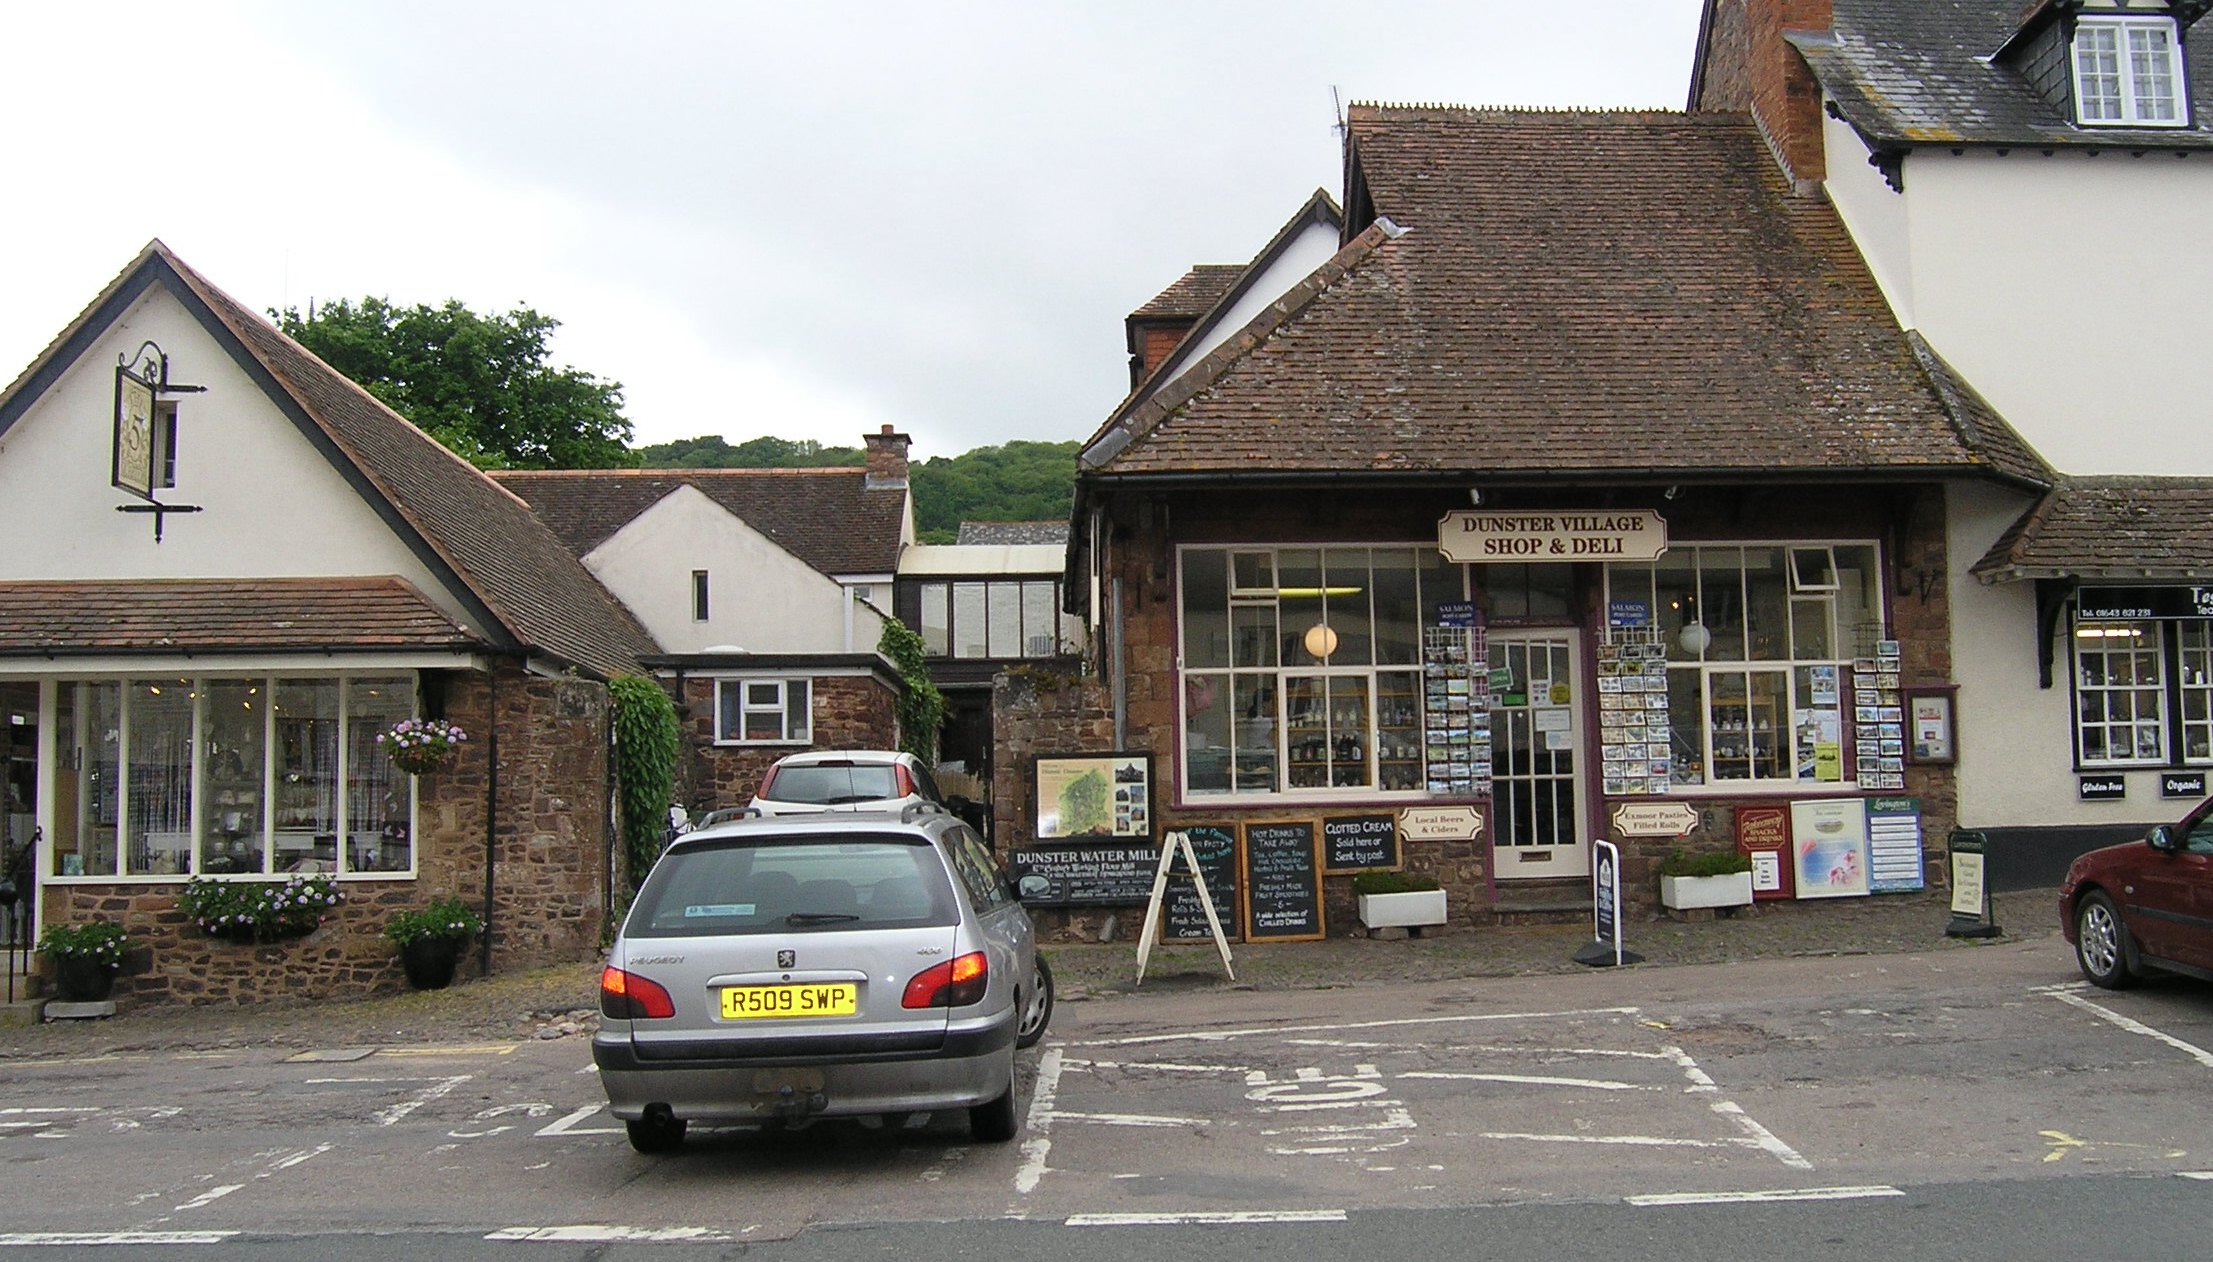 Village store & Delicatessen – Dunster